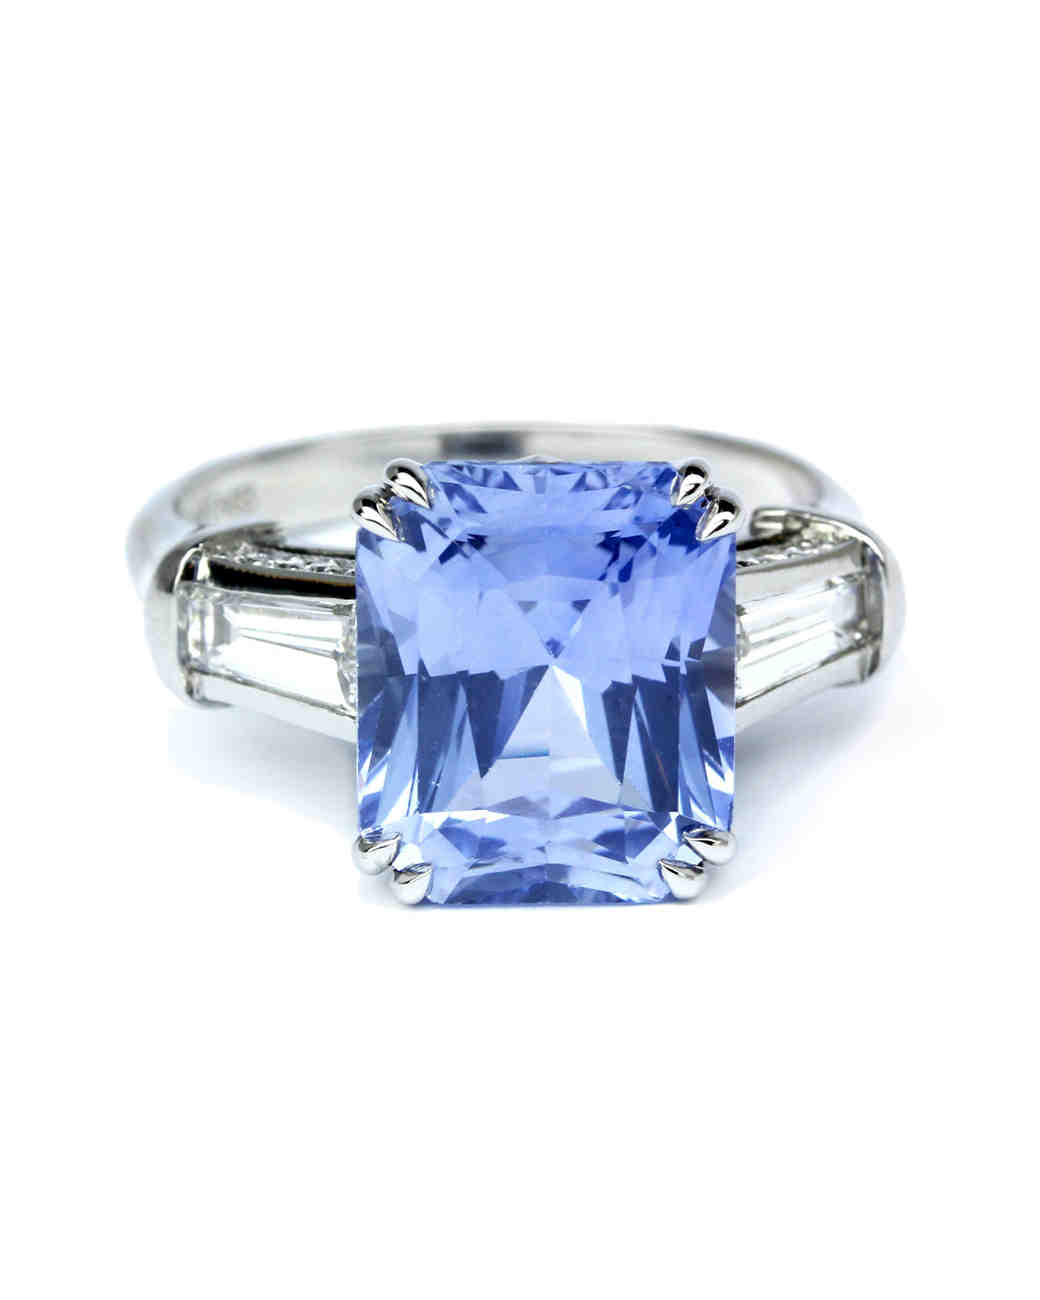 blue pictures diamond has ring wanna rings see else colored of who awesome i a wedding